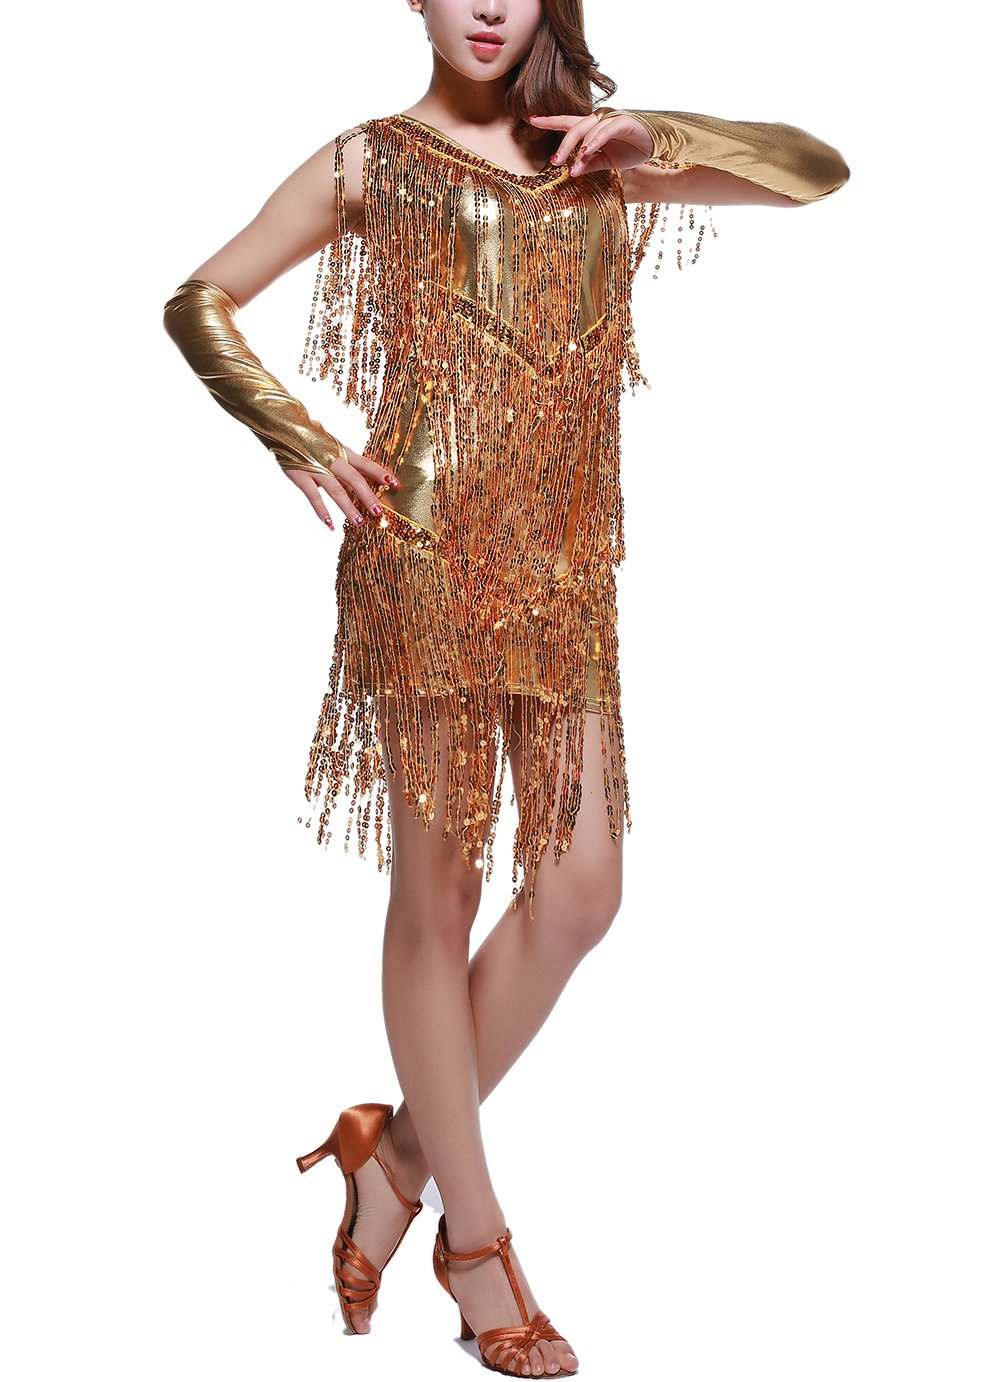 Galleon - Whitewed Tassel Sexy The Flapper Girl 1920s Gatsby Inspired  Dresses Gowns  c111be16fae7